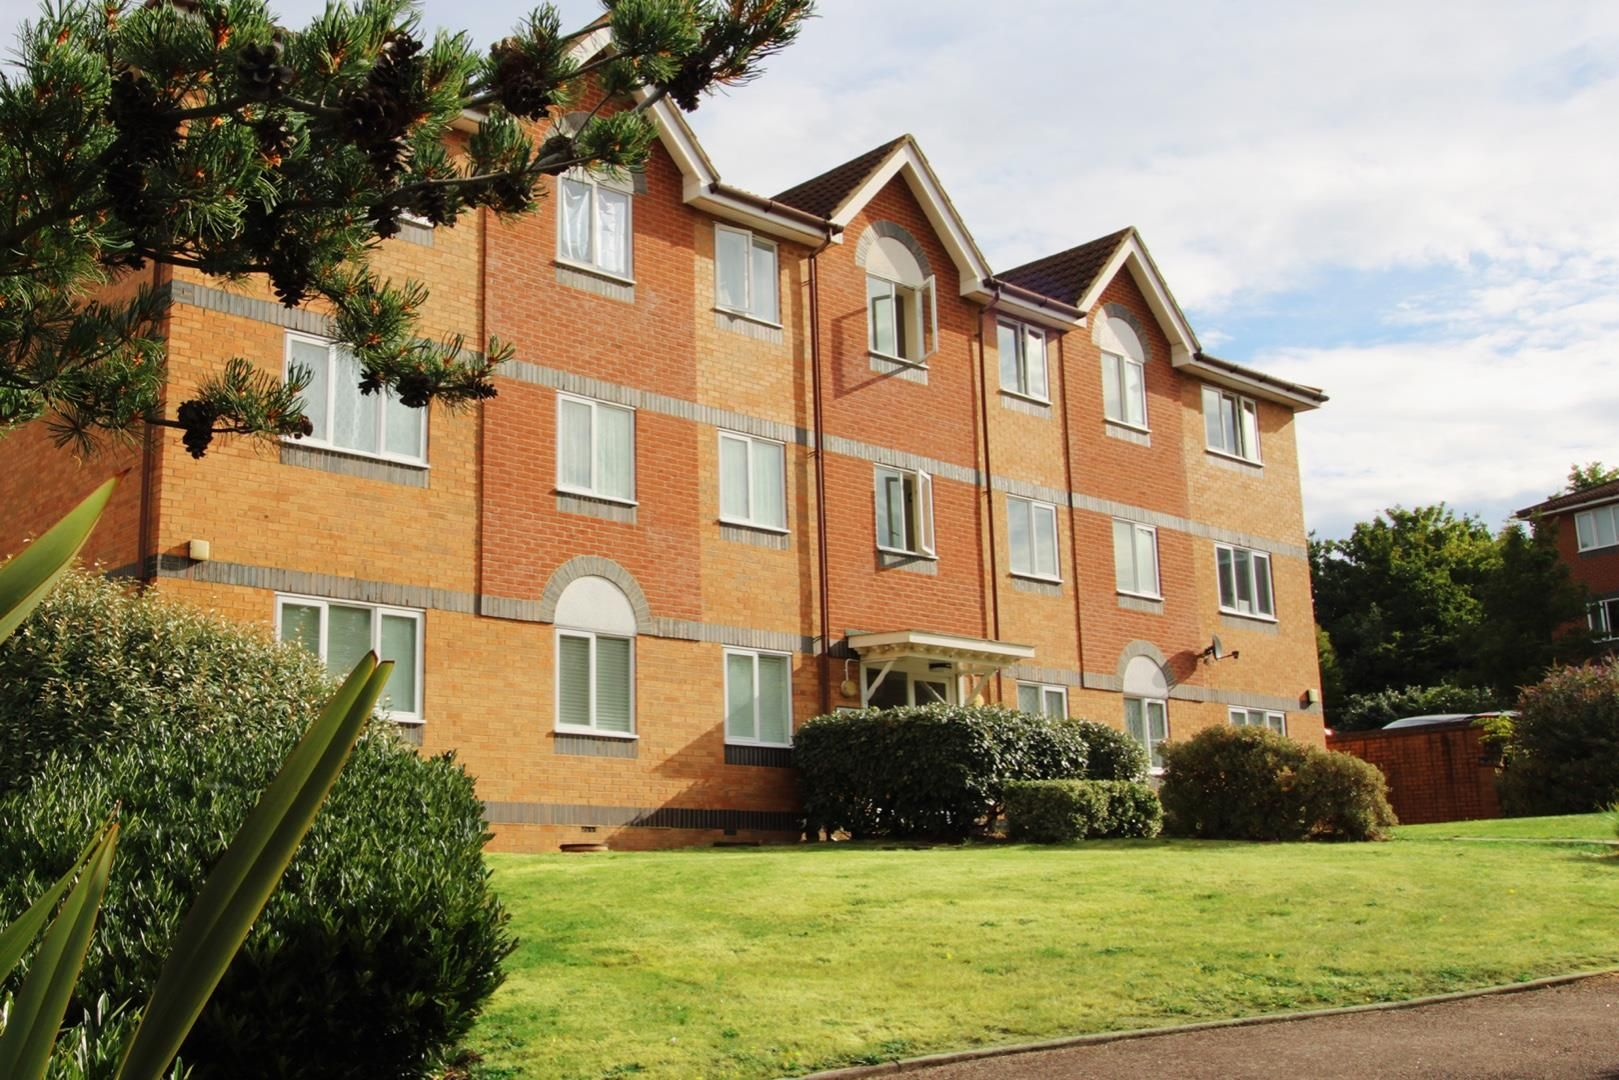 2 bed apartment for sale in Hebbecastle Down - Property Image 1